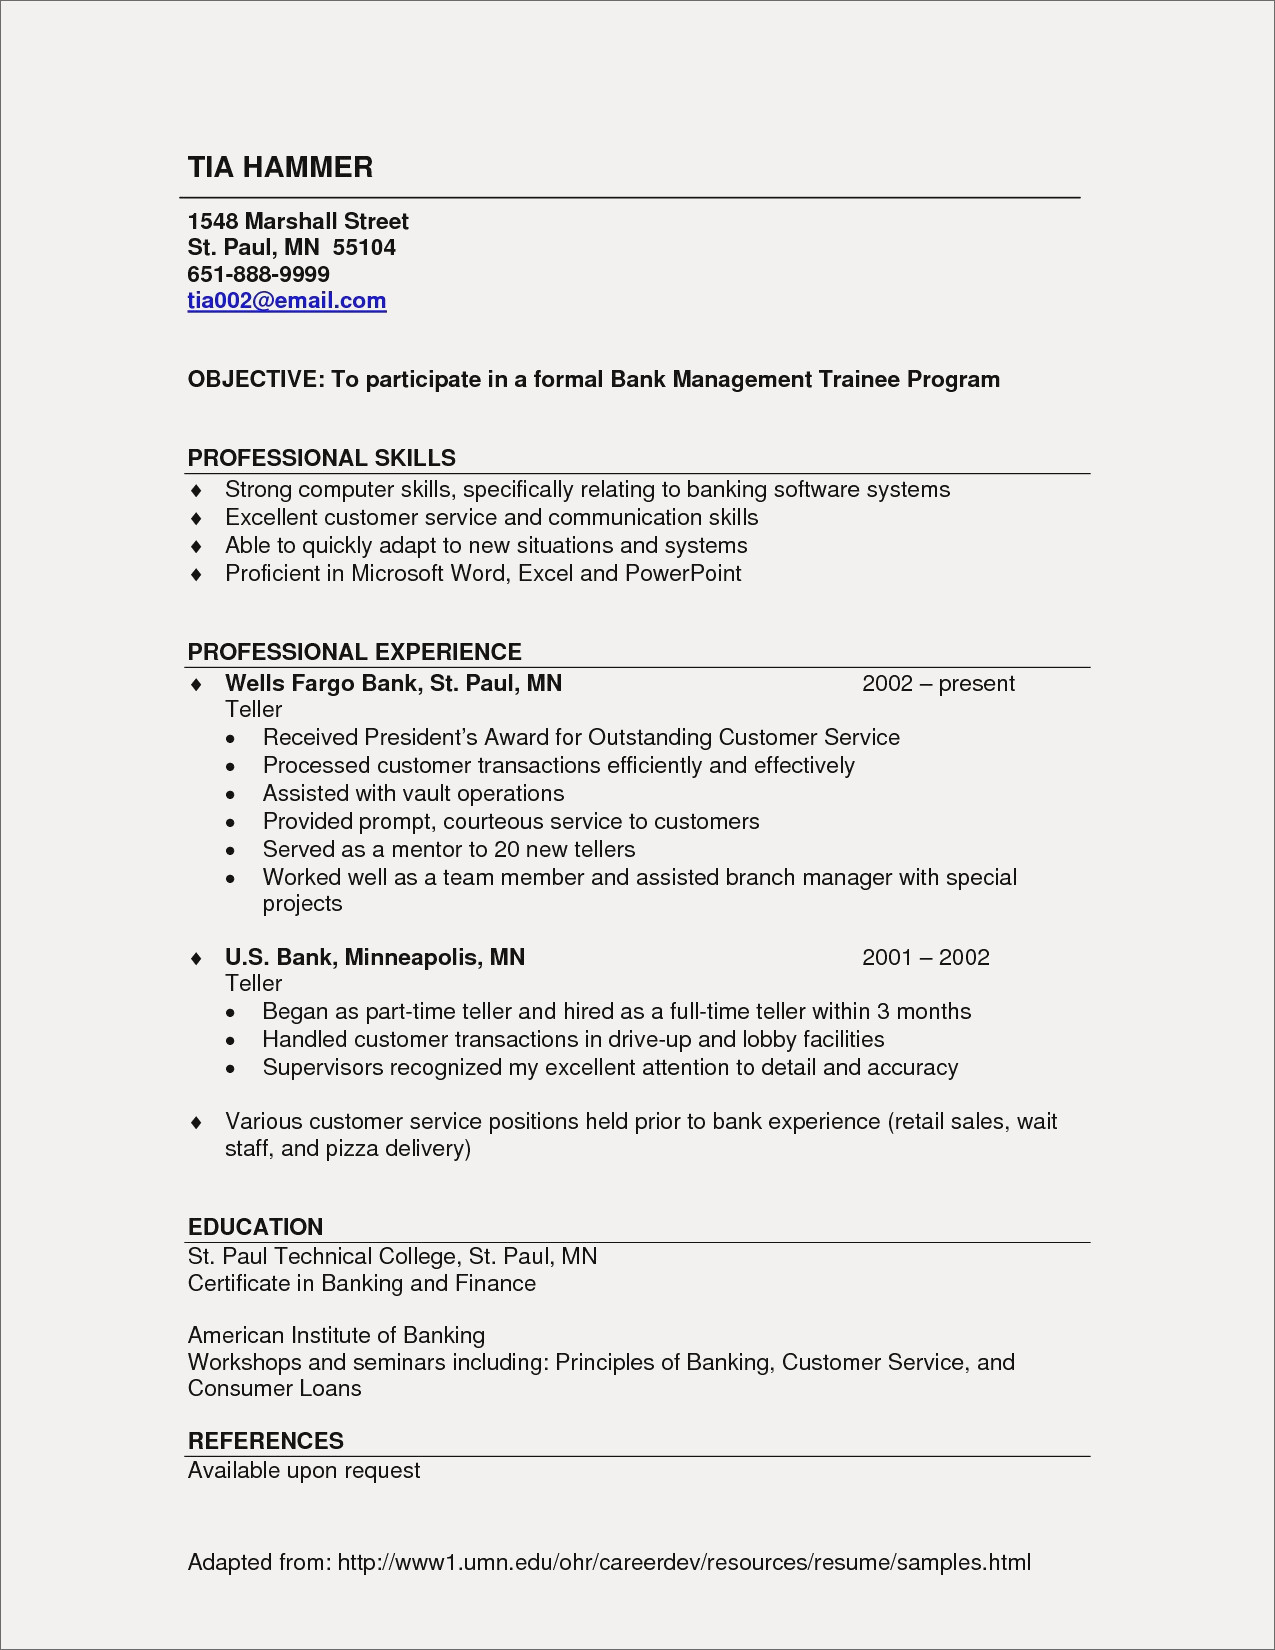 Supervisor Qualifications Resume - Resume Qualifications Examples for Customer Service – Customer